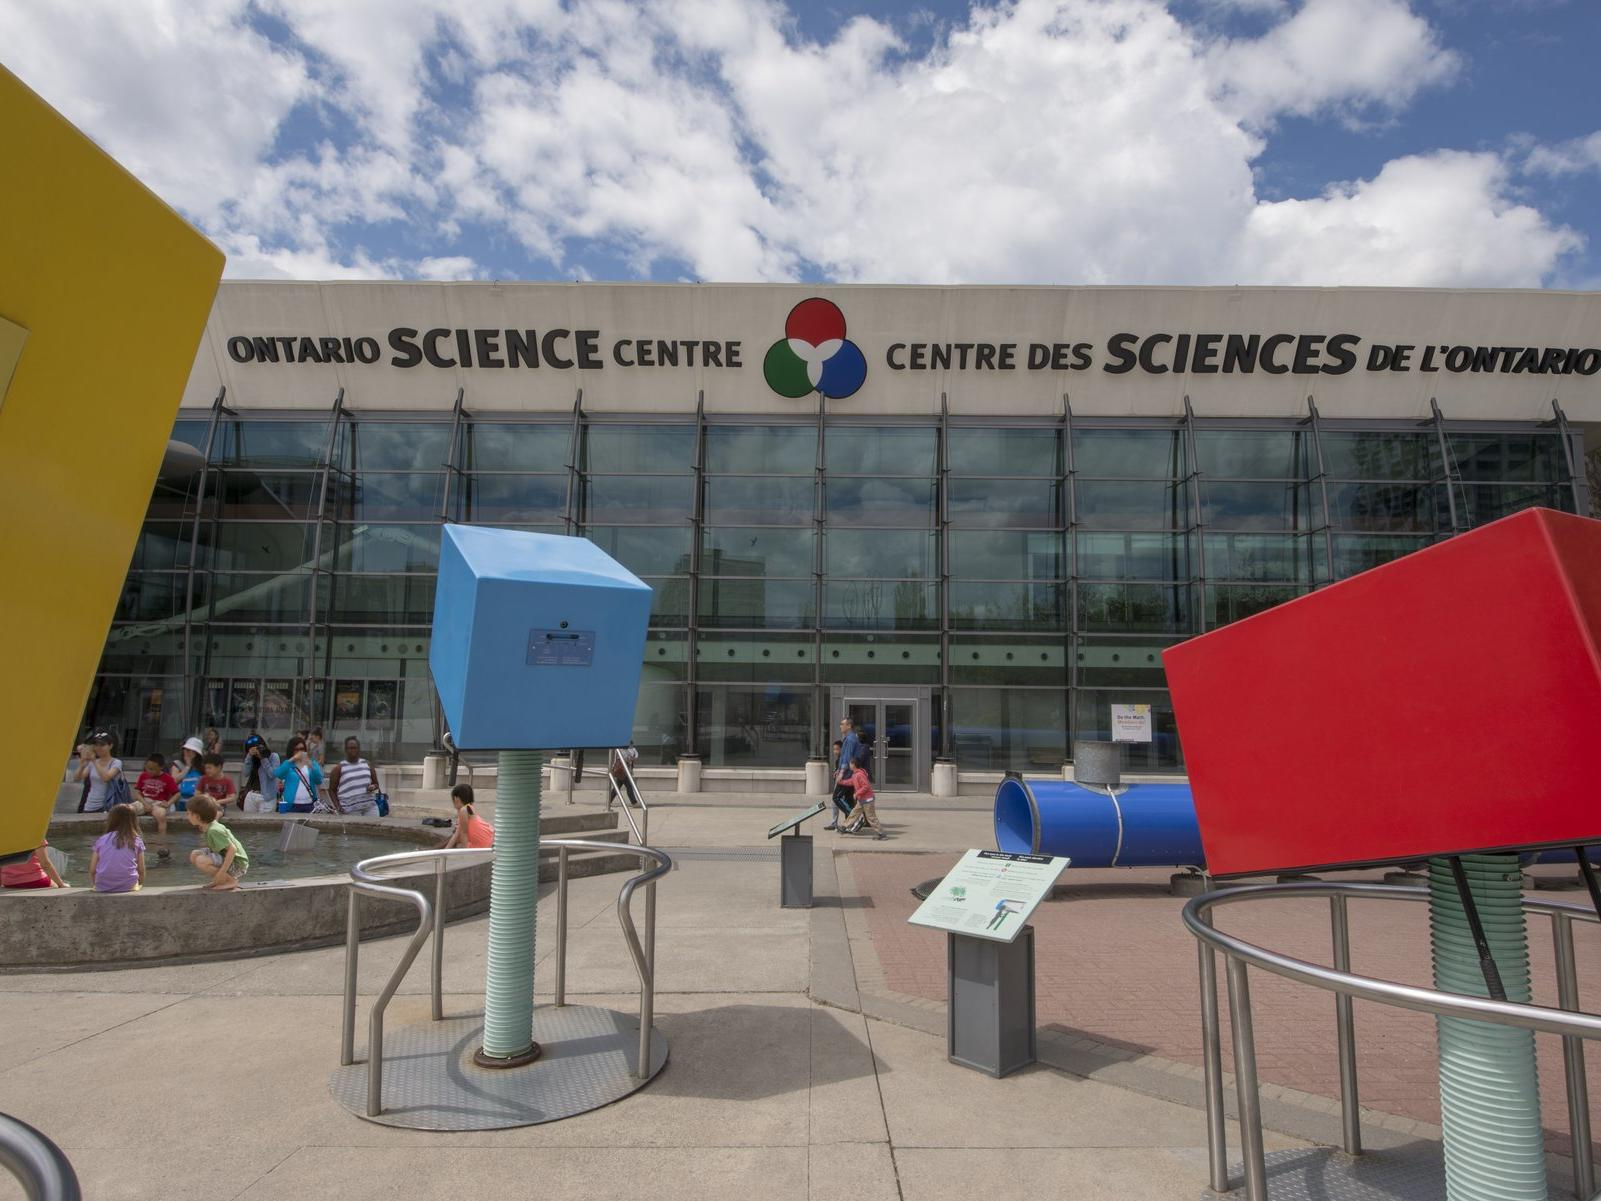 Front of the Ontario Science Centre